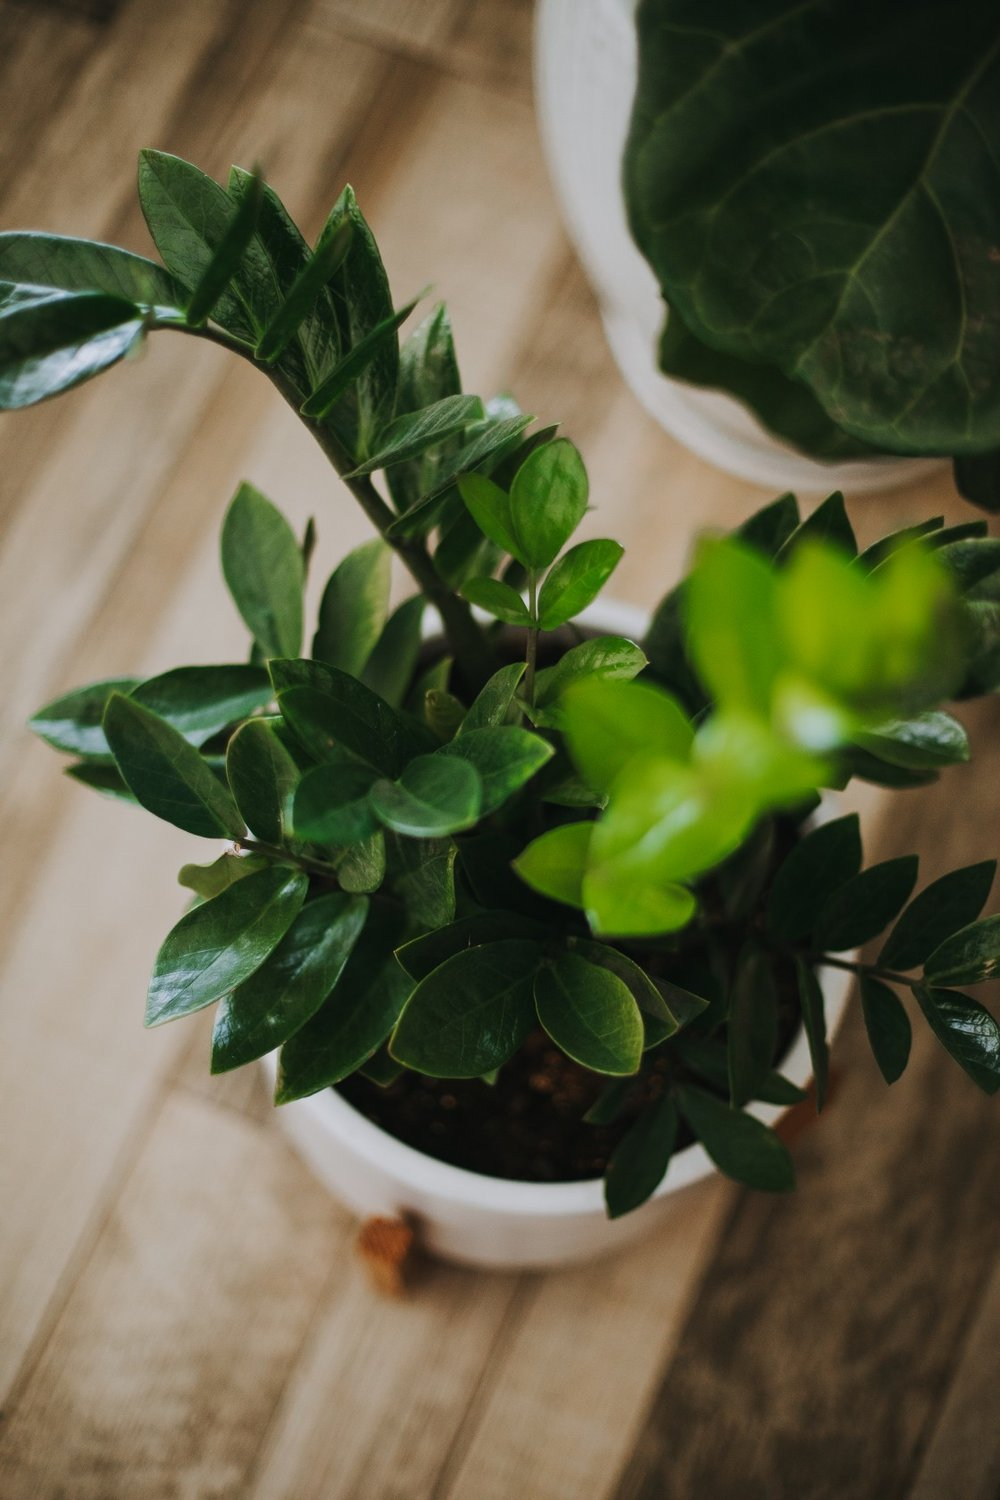 4. ZZ plant - This plant needs 2-3 cups of water weekly and the soil should be pretty moist at all times so make sure you check up on it! They also need direct sunlight.